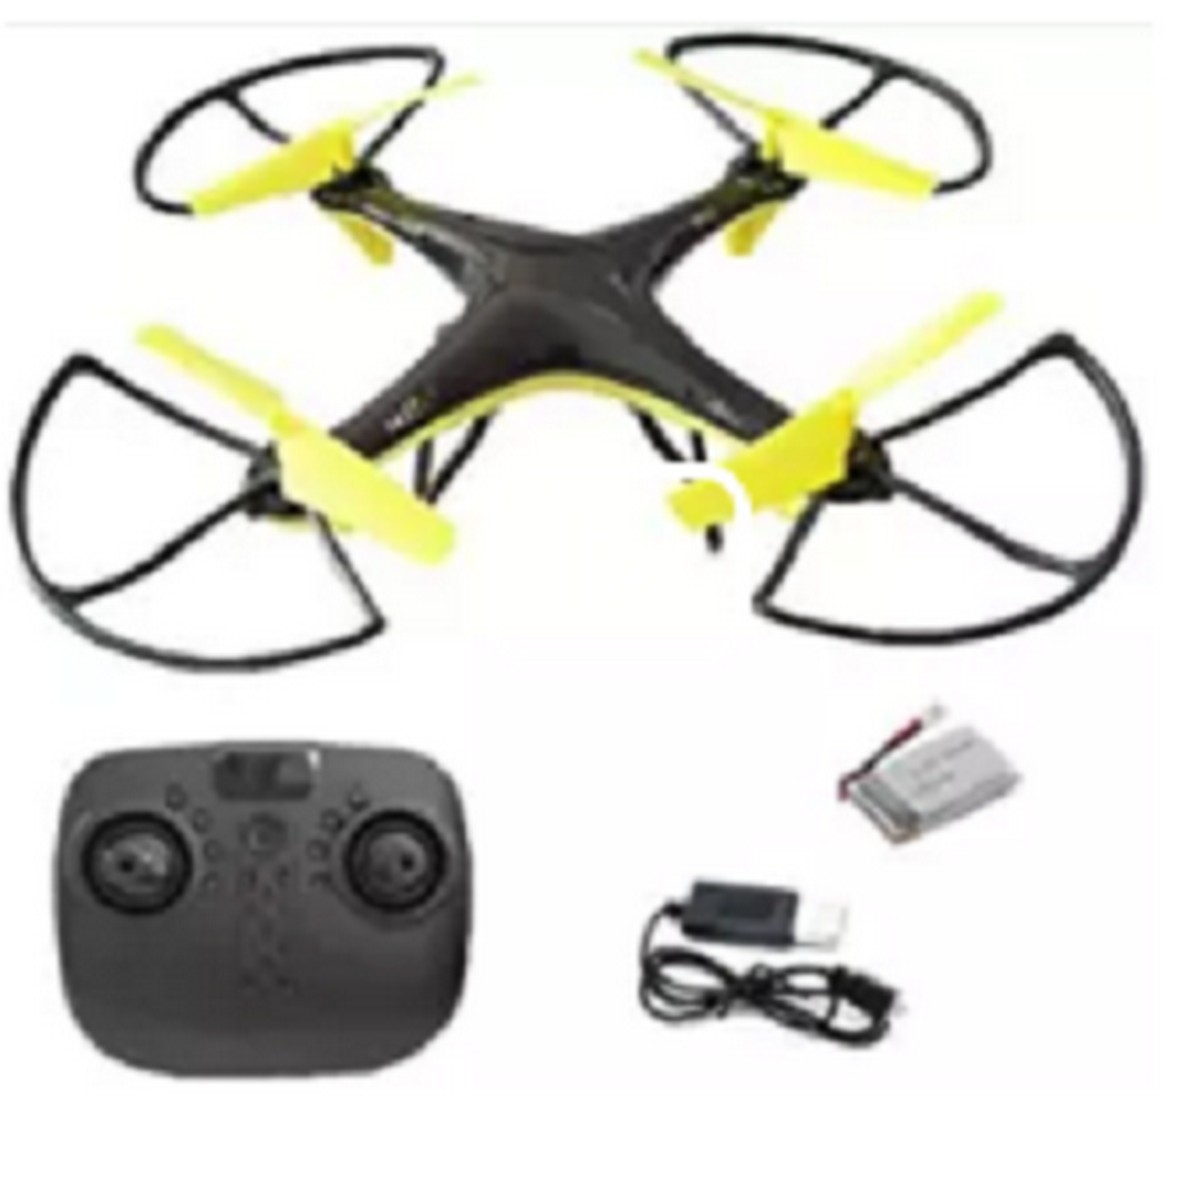 Muys traker  2.4GHz Remote Control Drone with Altitude Hold